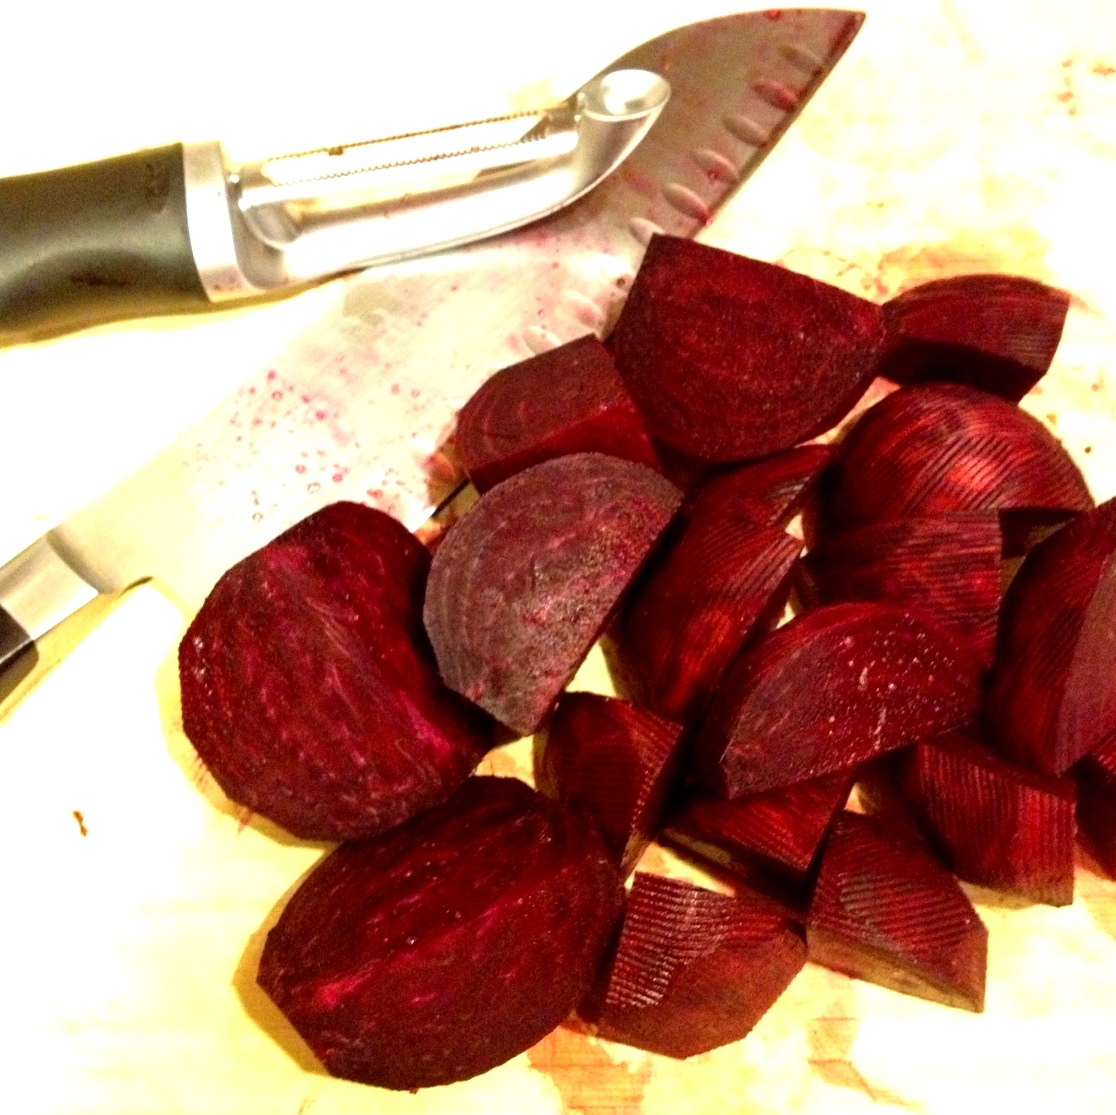 Homemade Beet Food Coloring! | Eatomaniac :)